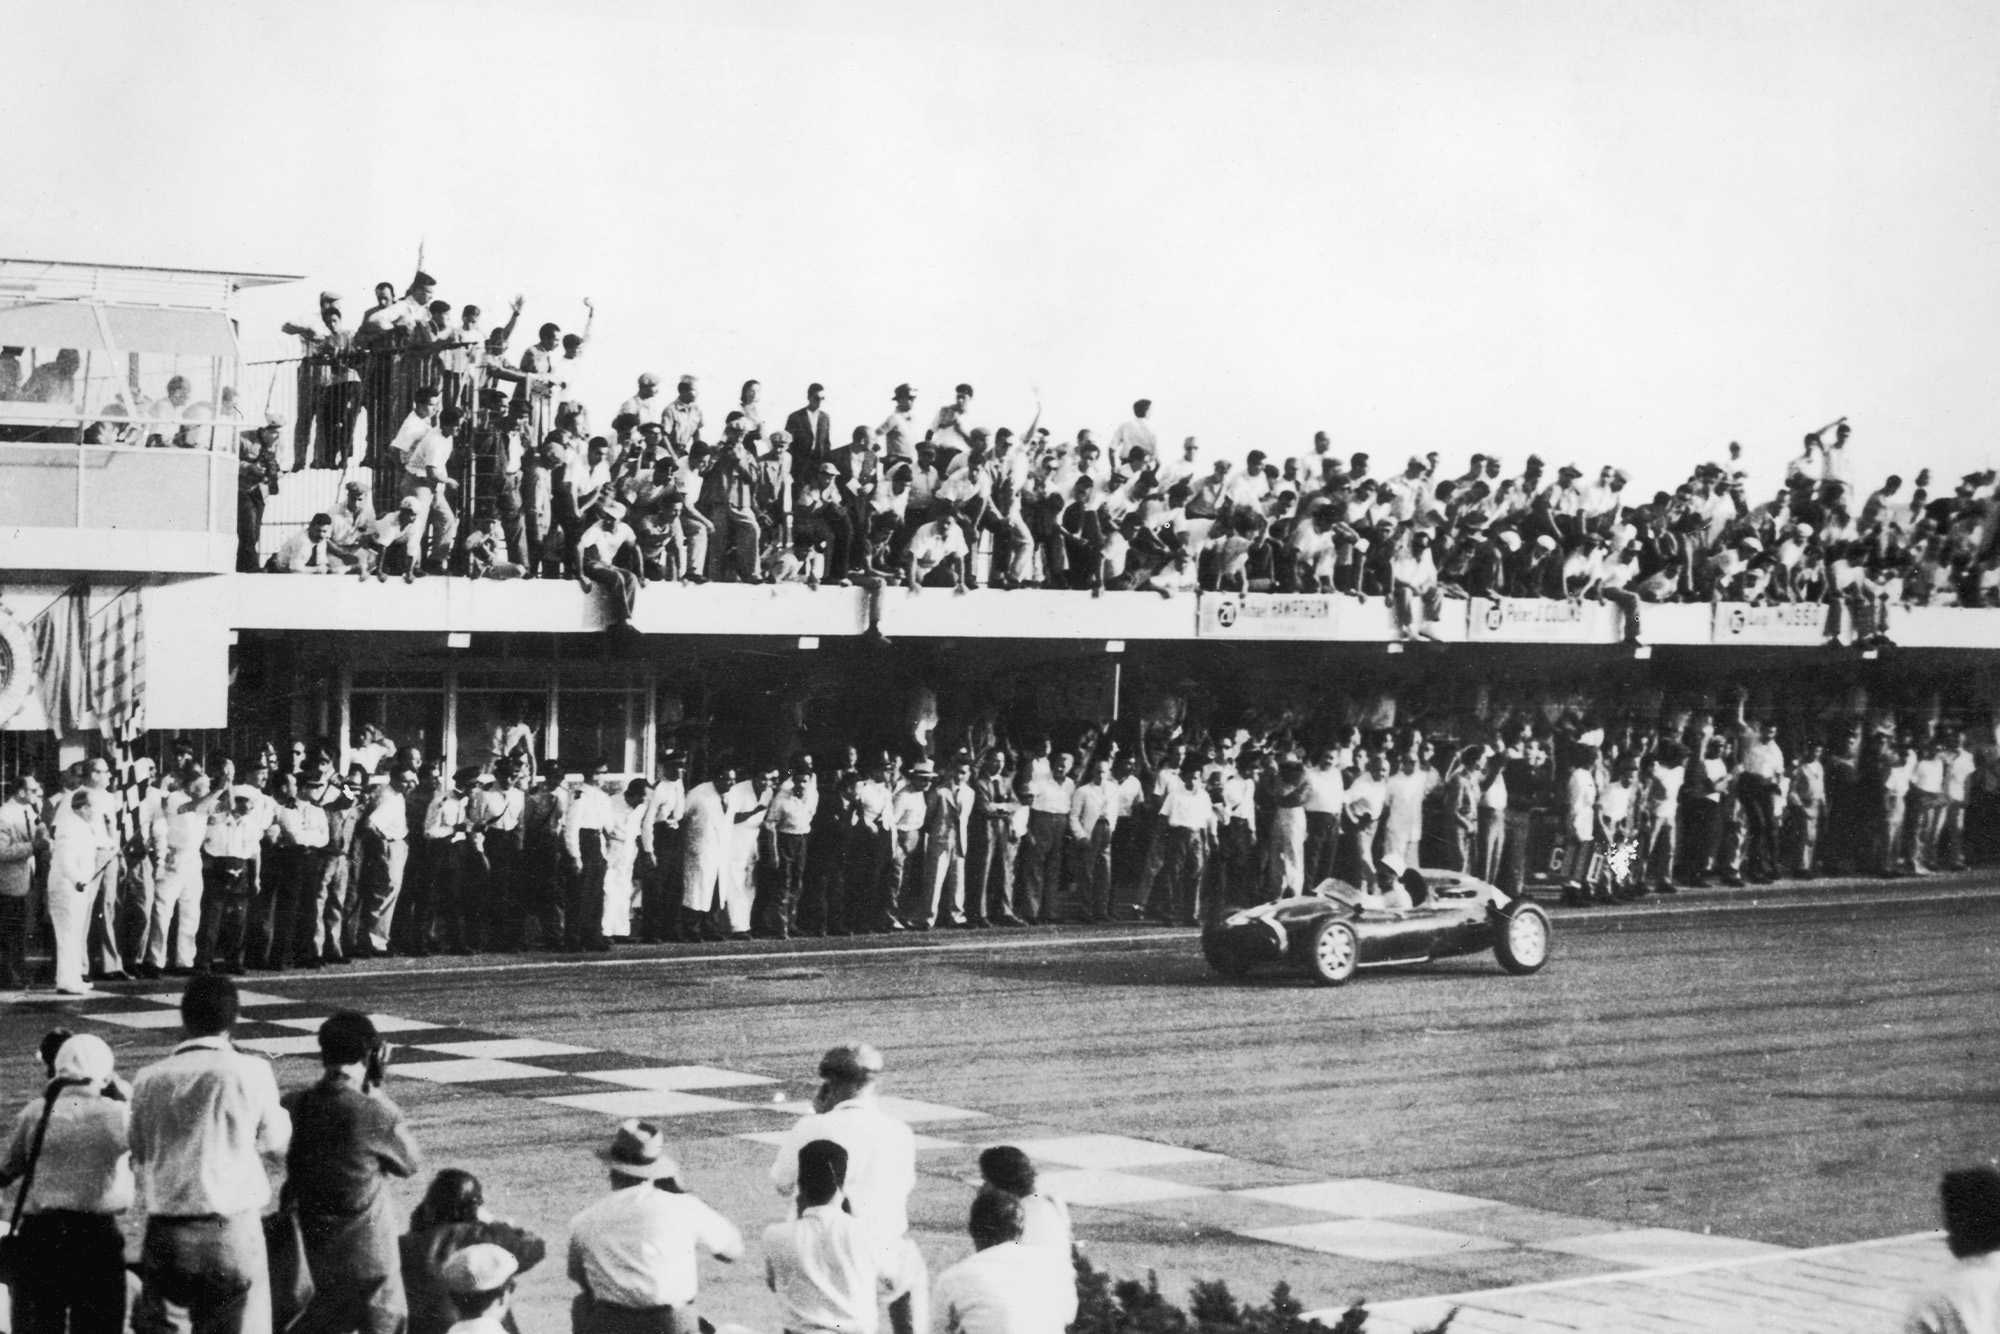 Stirling Moss crosses the line in Buenos Aires to win the 1958 Argentine Grand Prix in a Cooper-Climax T43